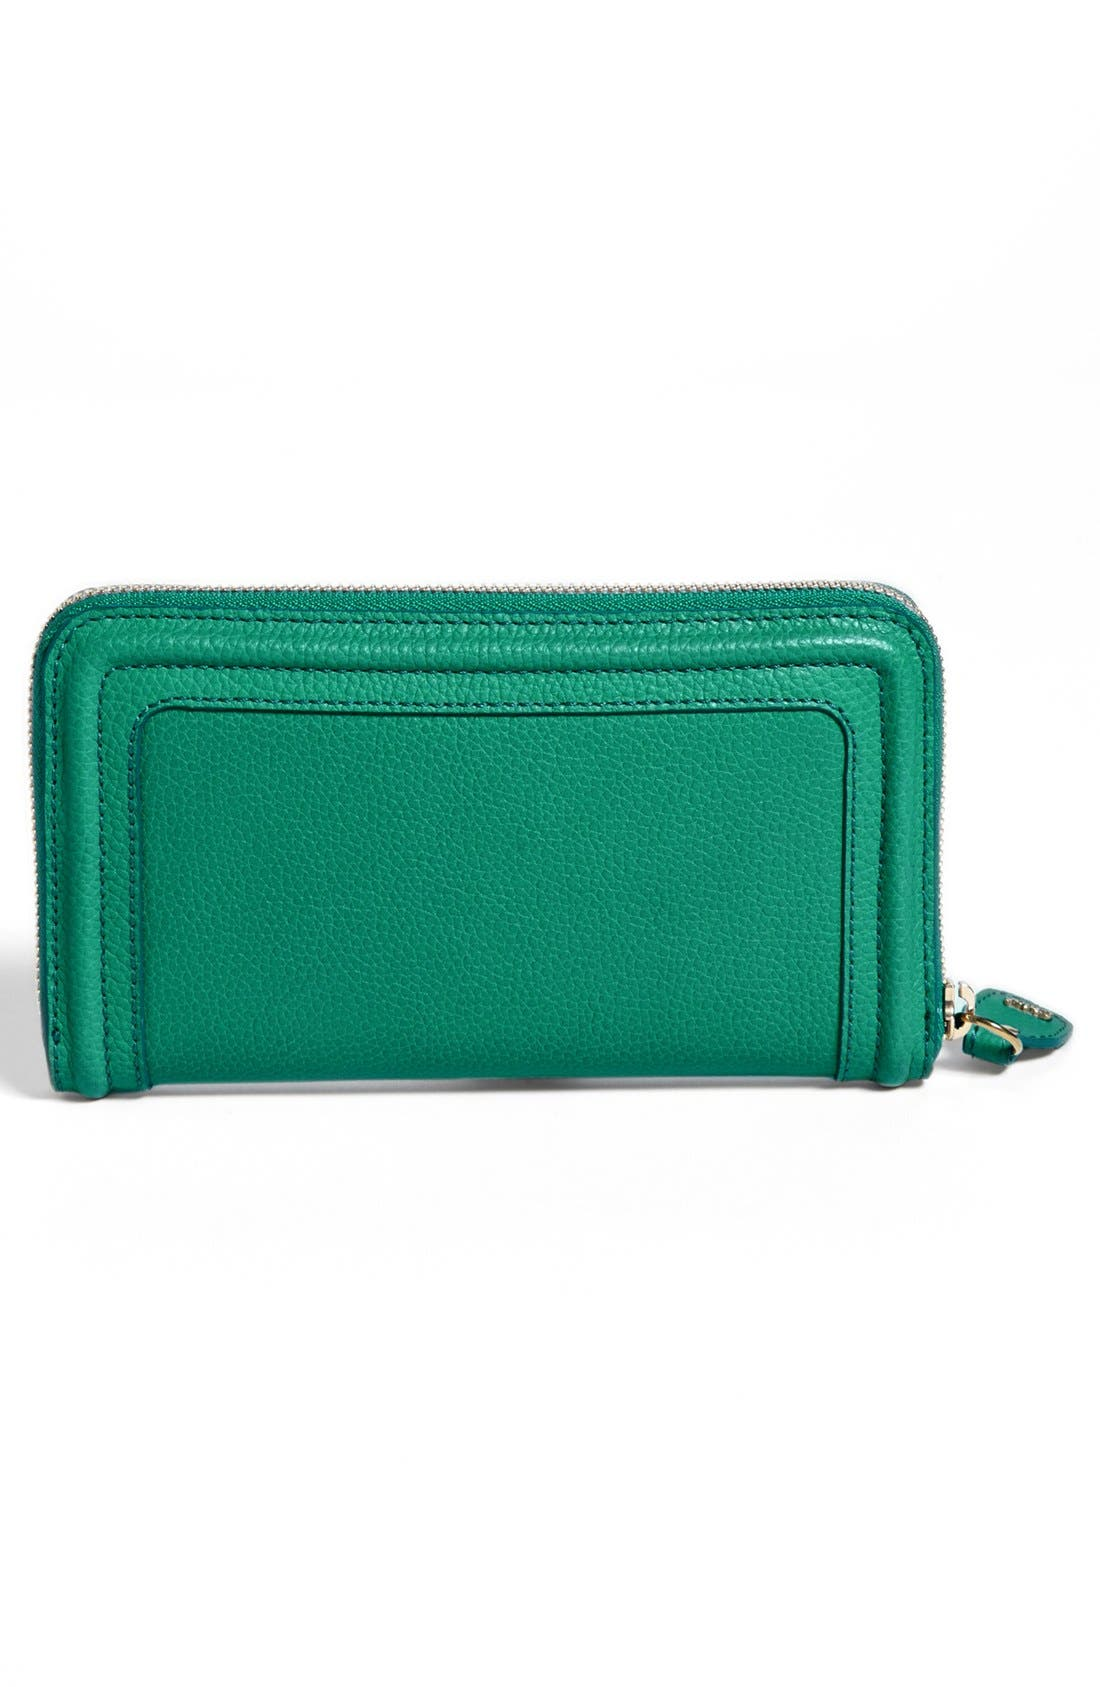 Alternate Image 3  - Chloé 'Paraty' Zip Around Calfskin Leather Wallet